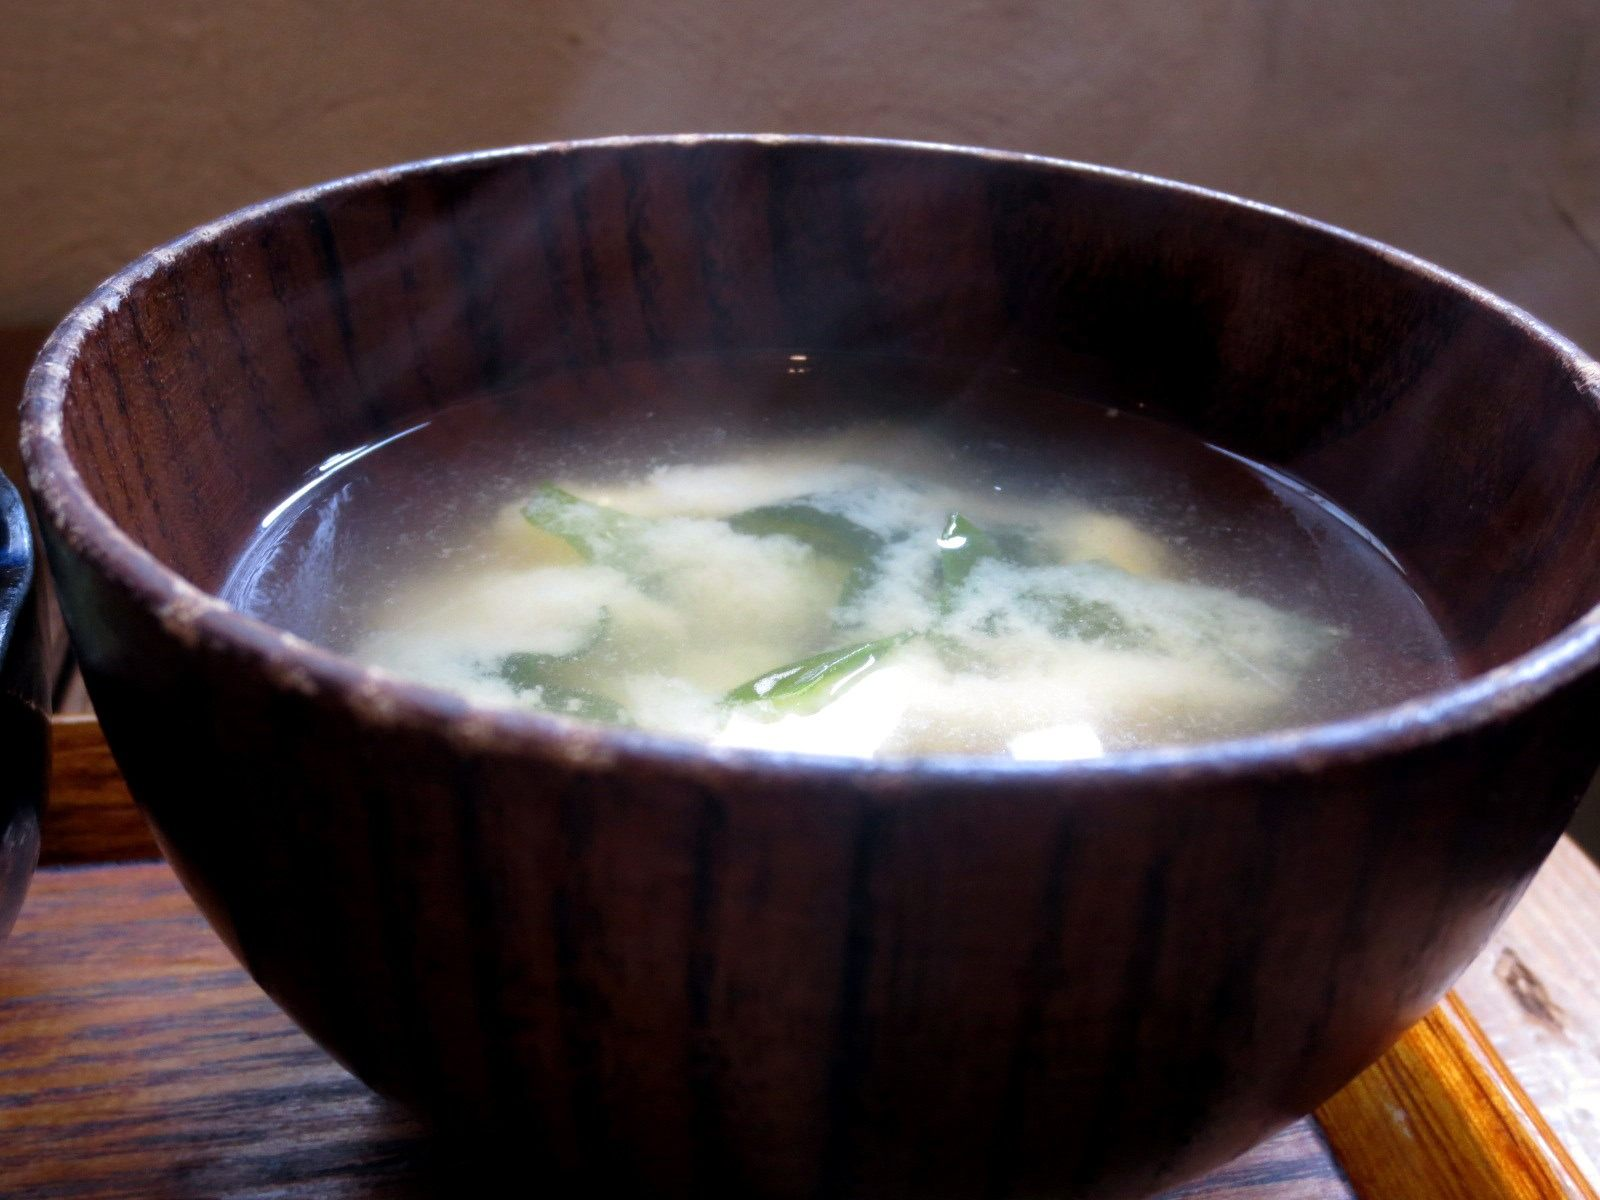 Miso soup with organic vegetables